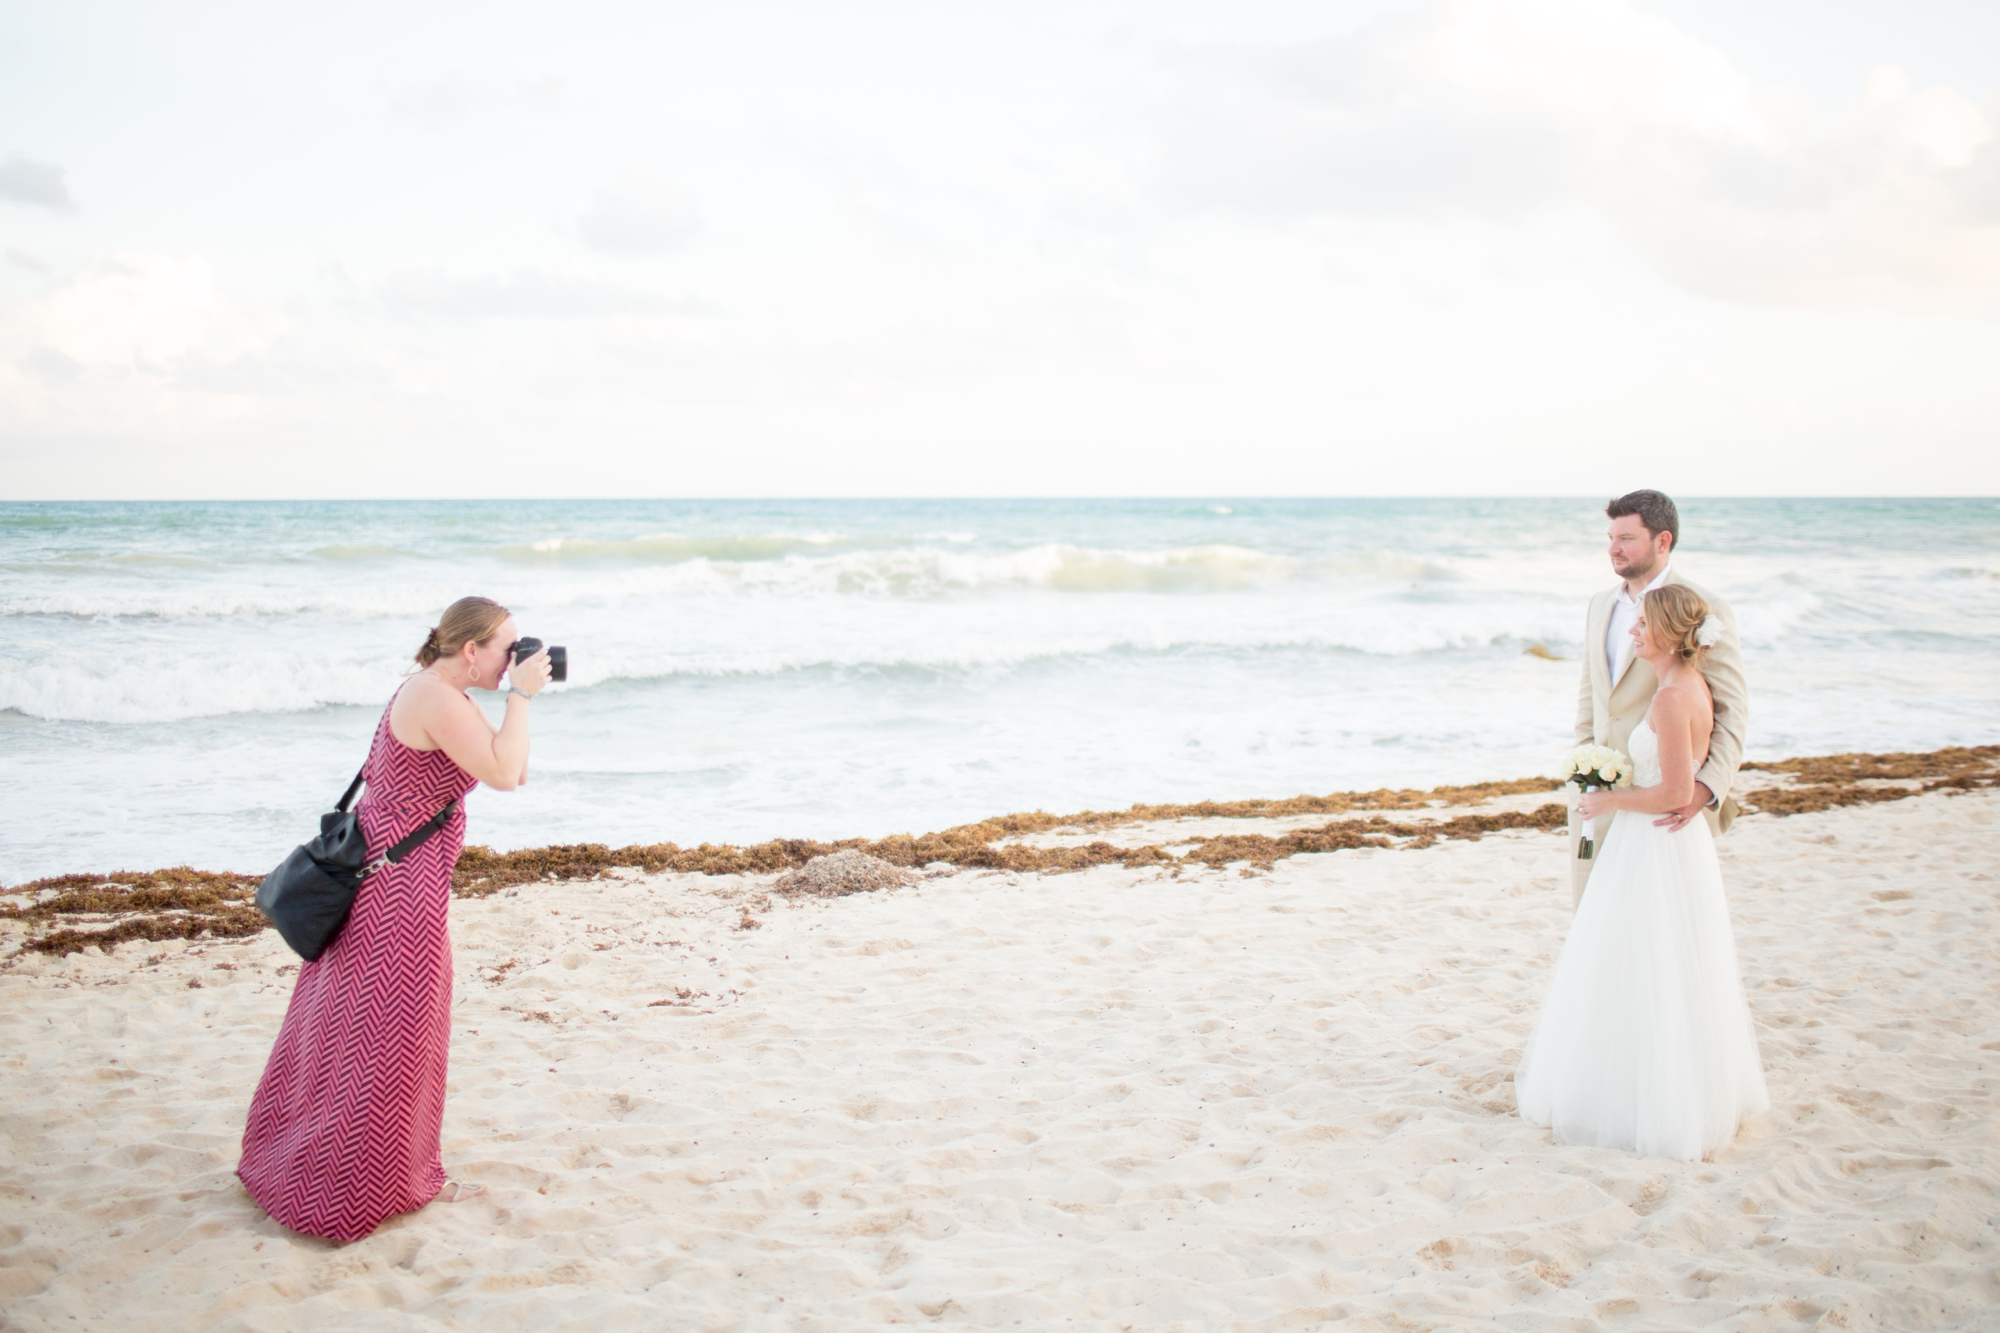 Morosoff Wedding 4-Bride & Groom Portraits-488_anna grace photography destination wedding photographer playa del carmen mexico photo.jpg